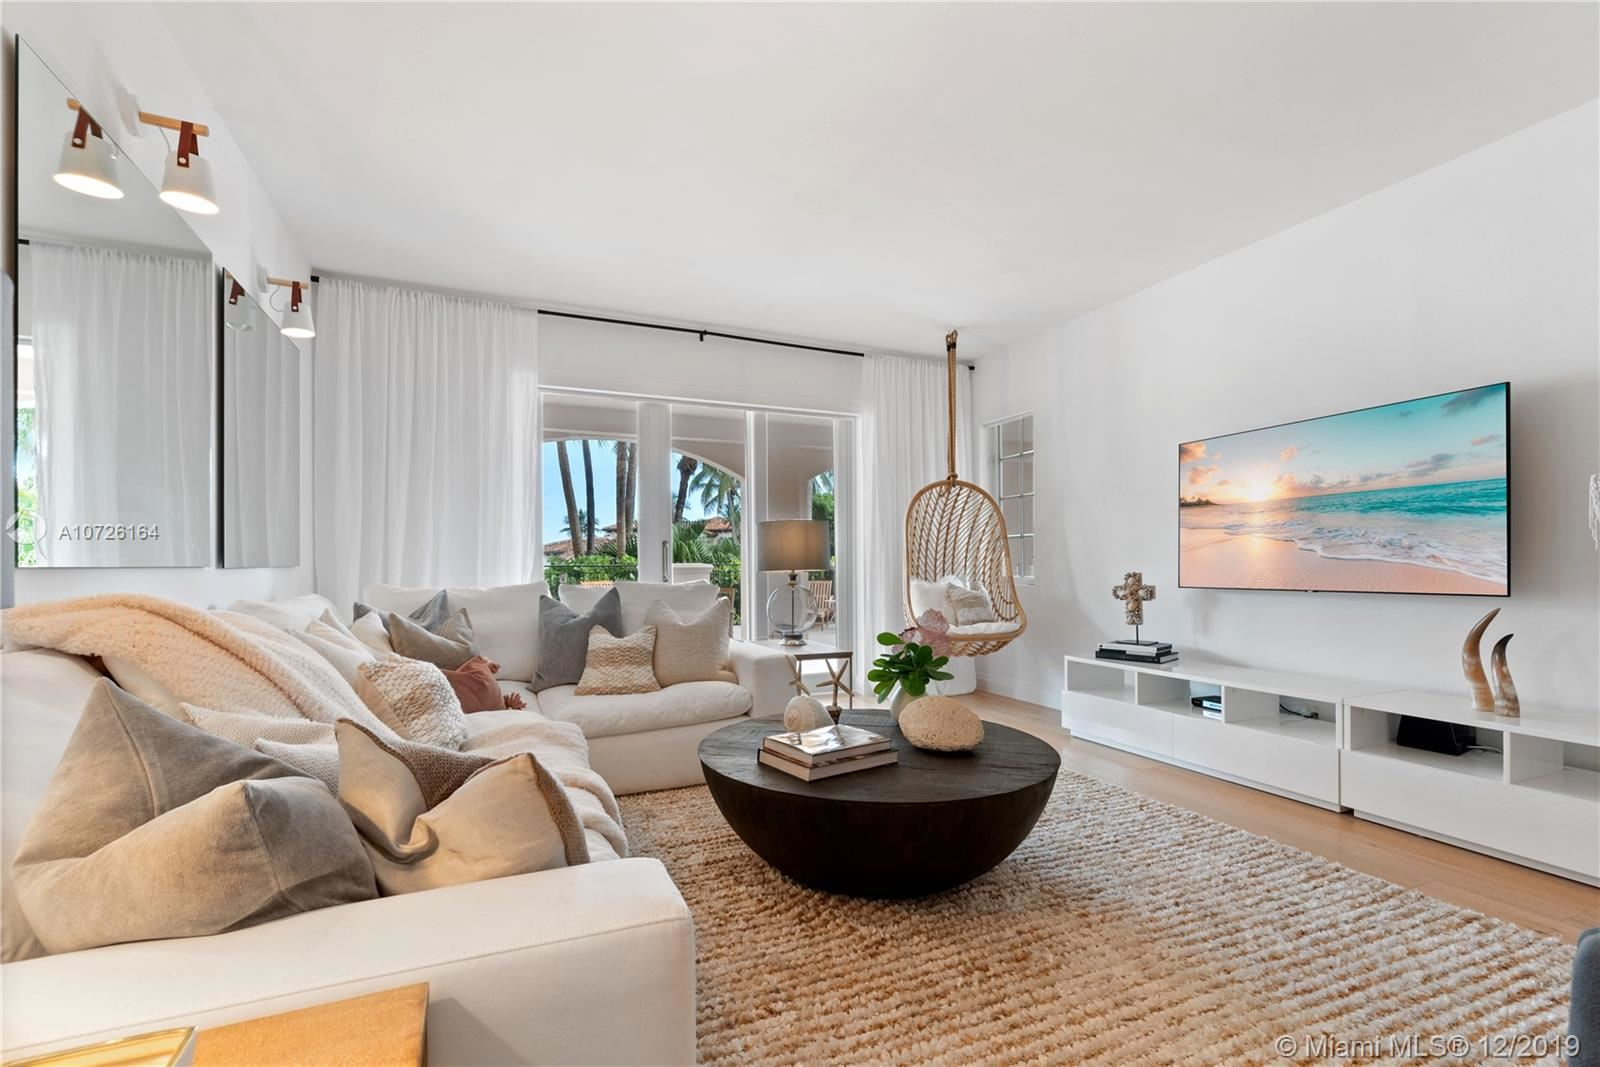 Photo of 19216 Fisher Island Dr #19216, Fisher Island, FL 33109 (MLS # A10726164)